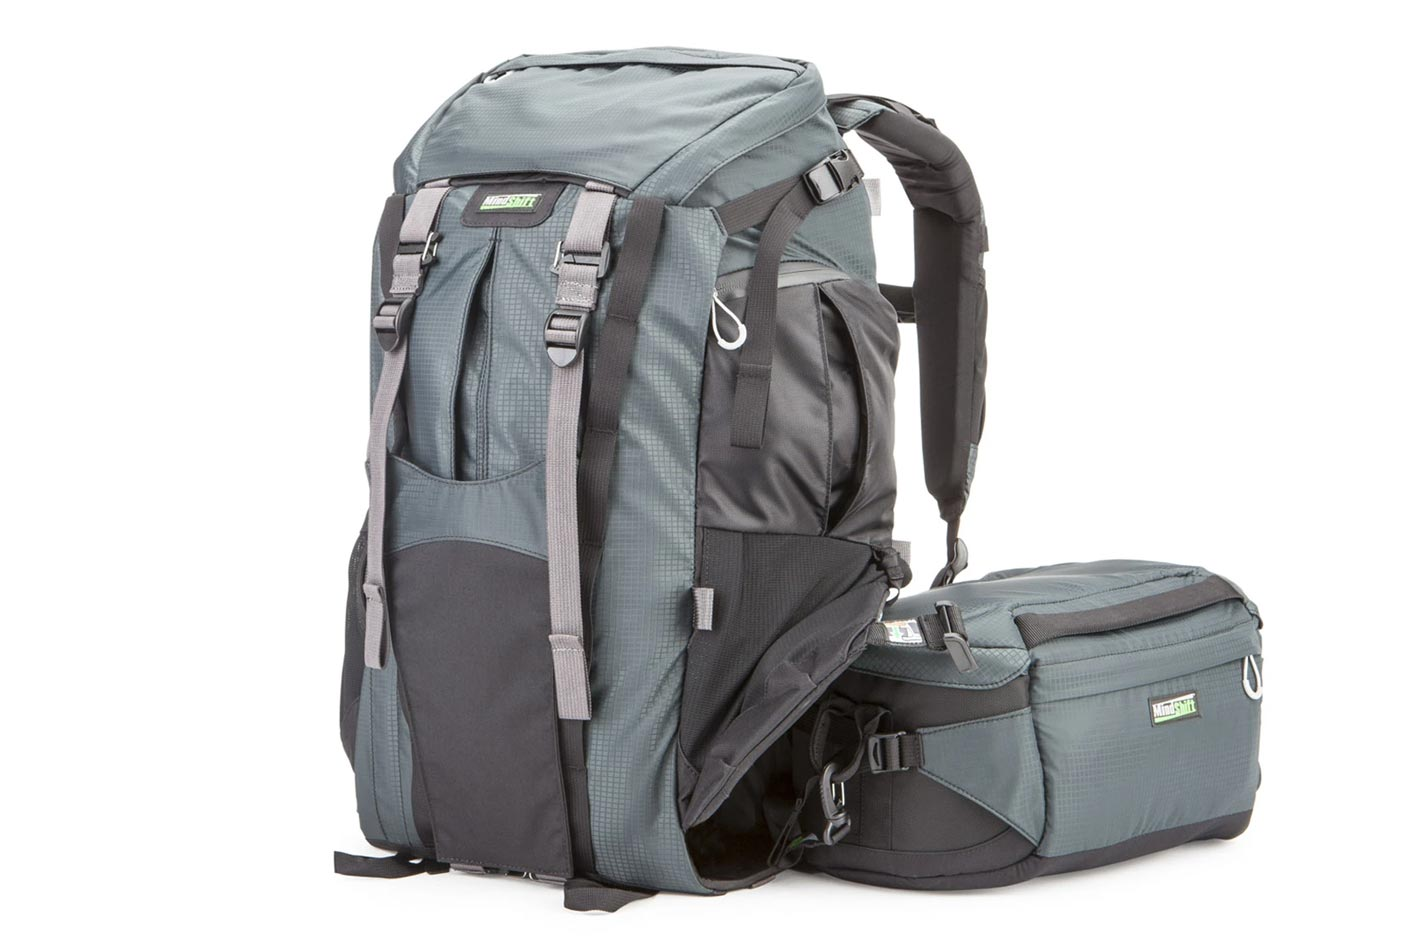 MindShift Rotation180 backpack now comes in three sizes